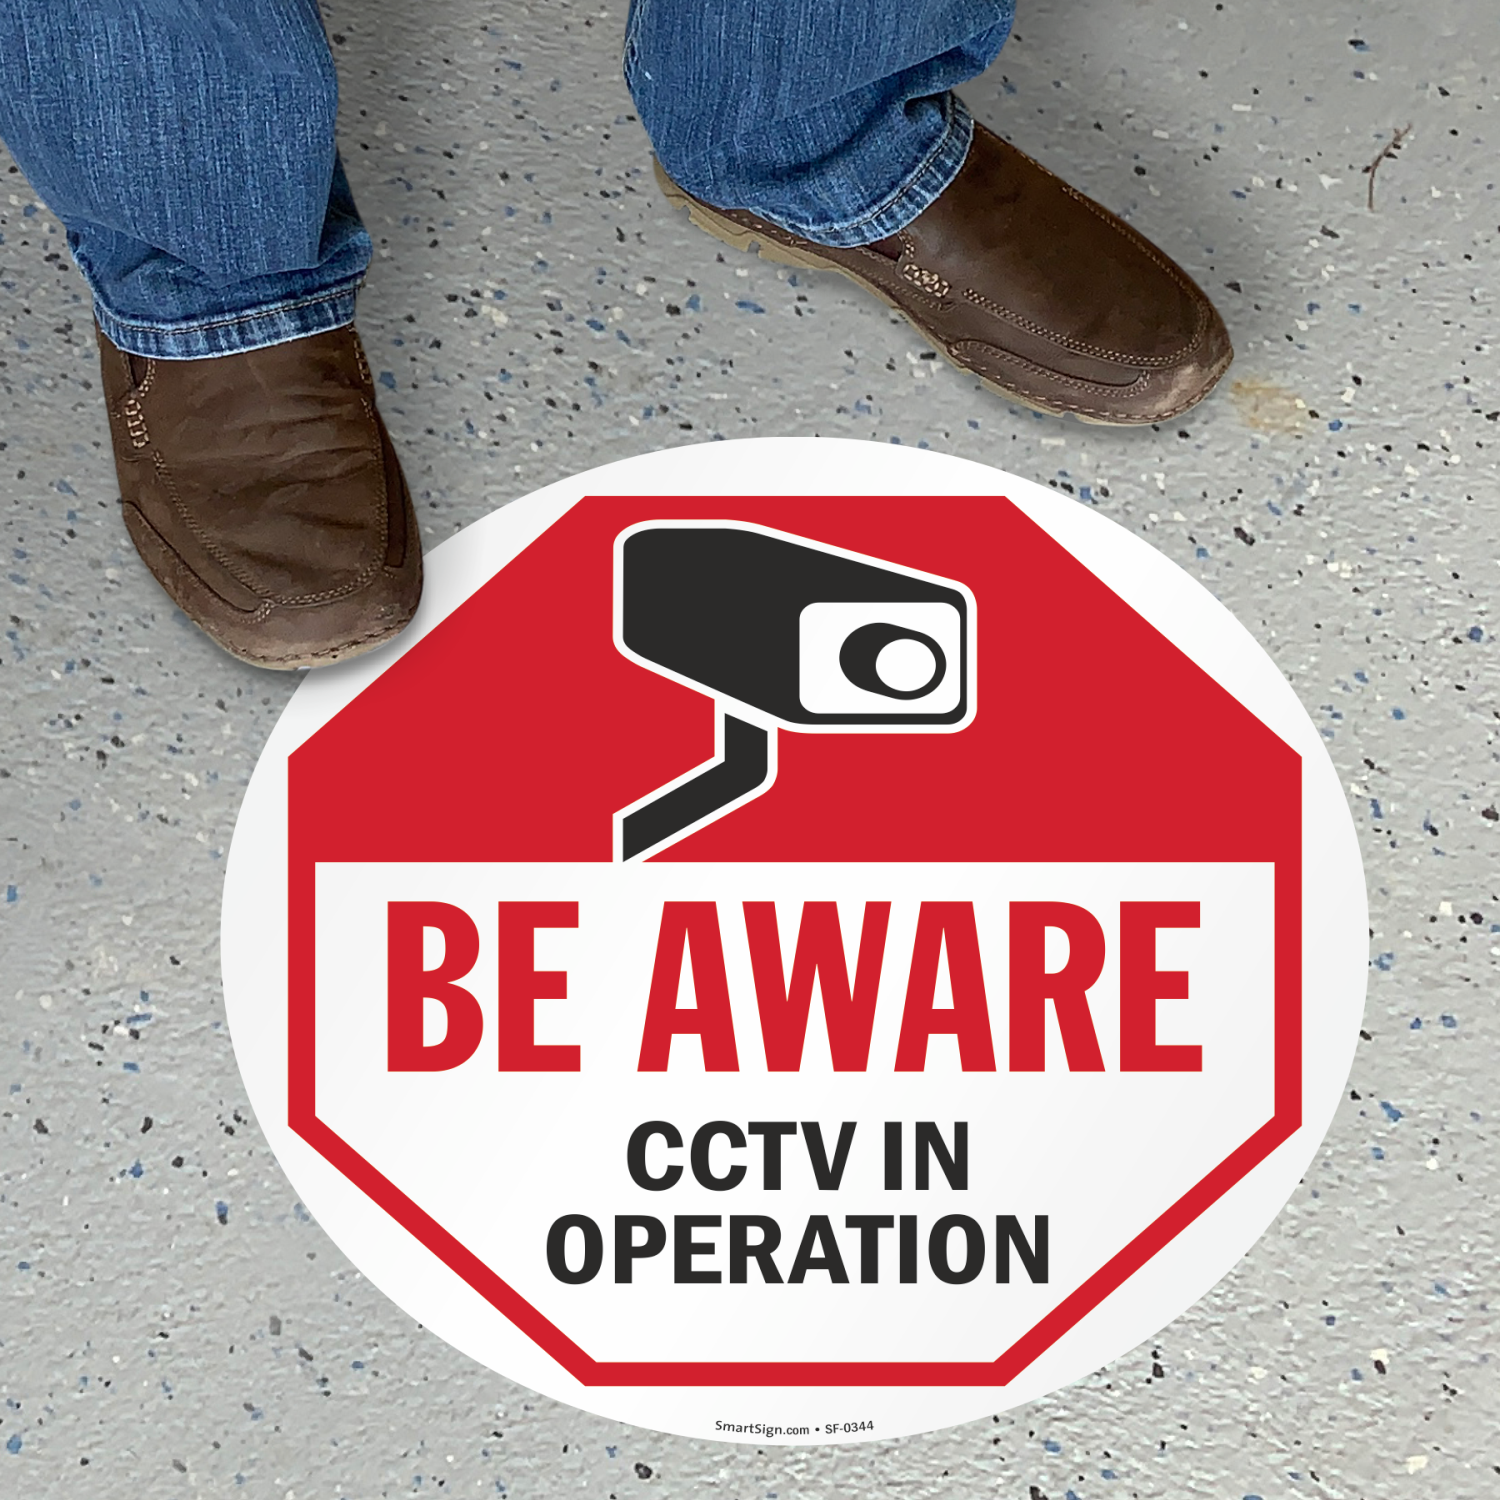 Be Aware Cctv In Operation Floor Sign  Made In Usa, Sku. How Many People Are Addicted To Alcohol. Free Wildcard Ssl Certificate. Graduate Certificate In College Teaching. California Vehicle Insurance. Best Chemical Engineering Schools. Cancer Centers Of America Chicago Il. Mechanic And Farmers Bank Fort Wayne Colleges. Event Registration Companies